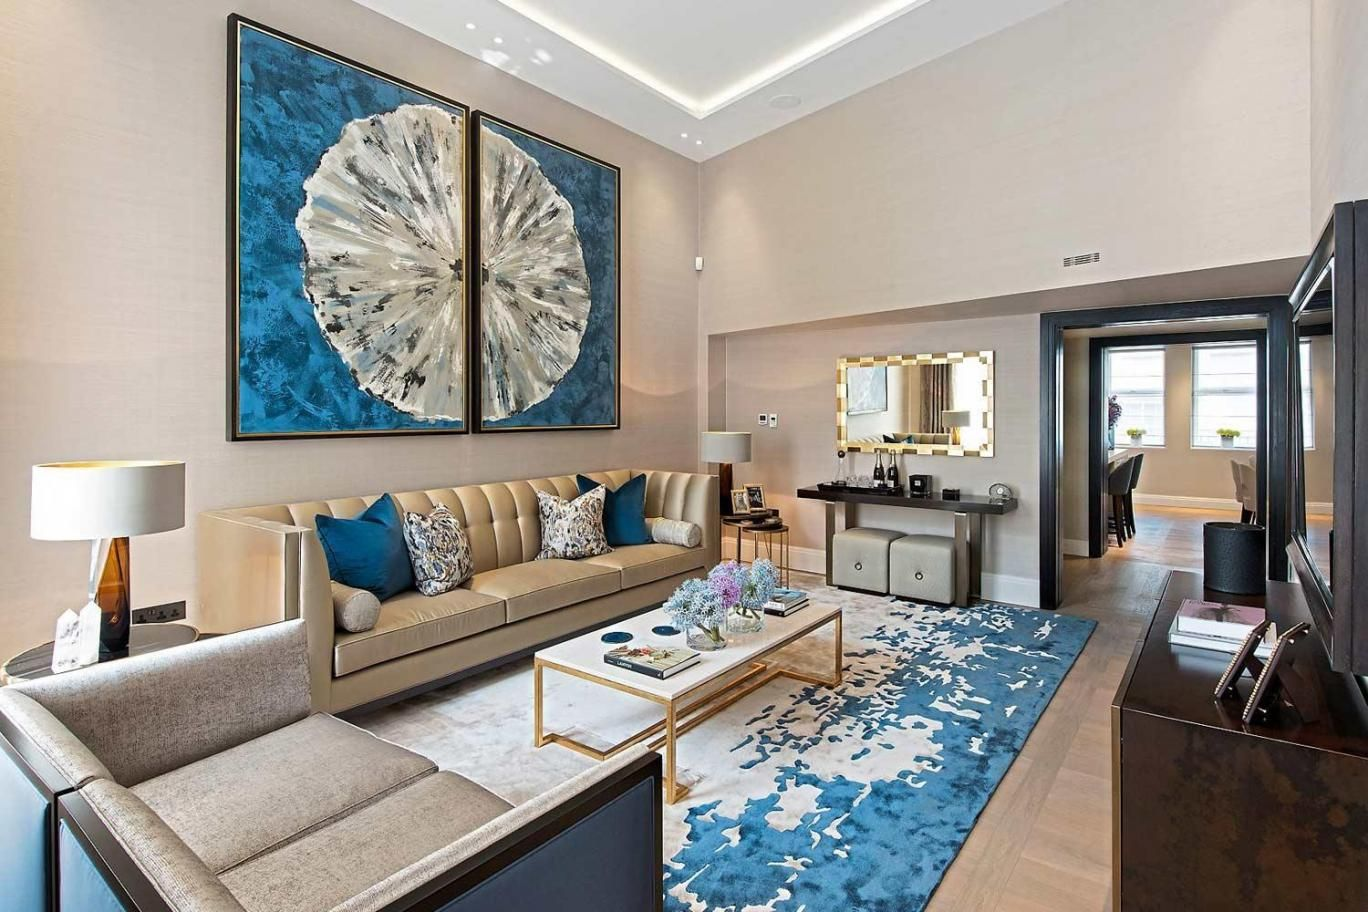 A beautiful bespoke version of our CELESTIAL rug, designed especially for Taylor Howes and their Crescent Park project. Loved finding this picture in the @eveningstandard last night.   #bespokerugs #taylorhowesdesign #COLBOURNS #handtuftedrugs #handtuftedcarpets #parkcrescent #london #eveningstandard #bespokedesign #luxuryinteriors #interiorstyling #luxuryproperty #luxury #140lotsroad